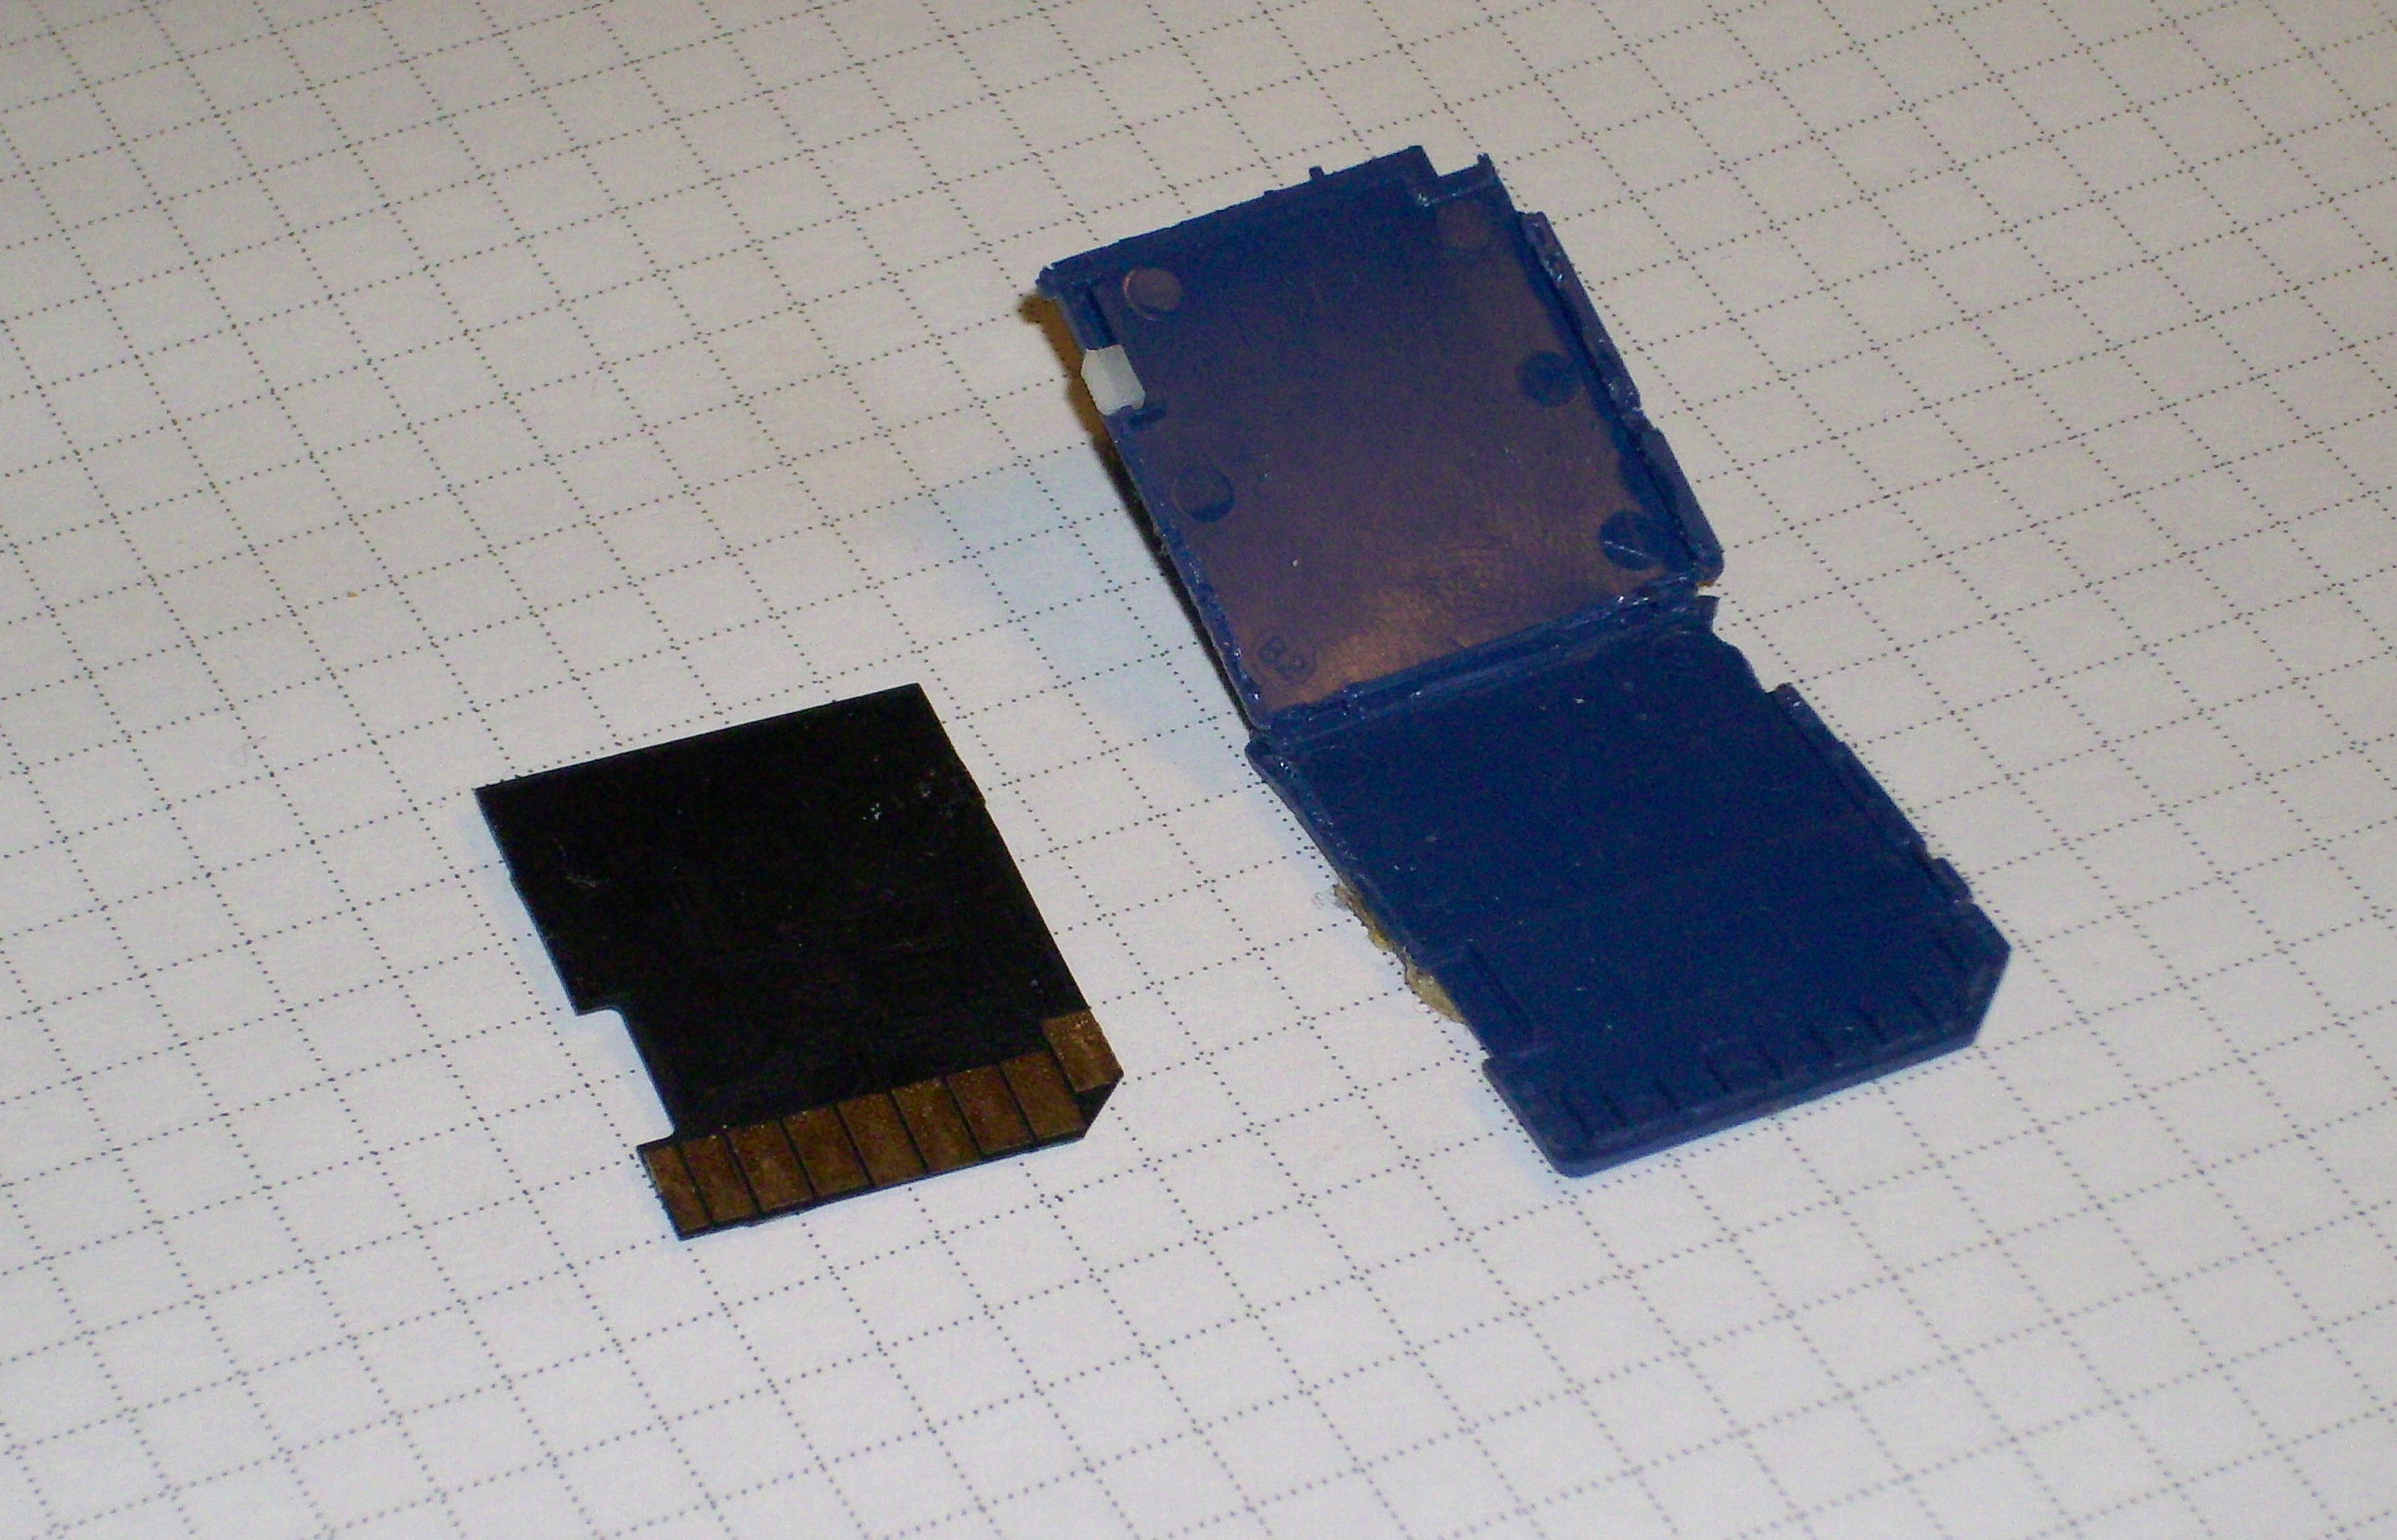 Out Cards For Files File:sd Card Open on Square